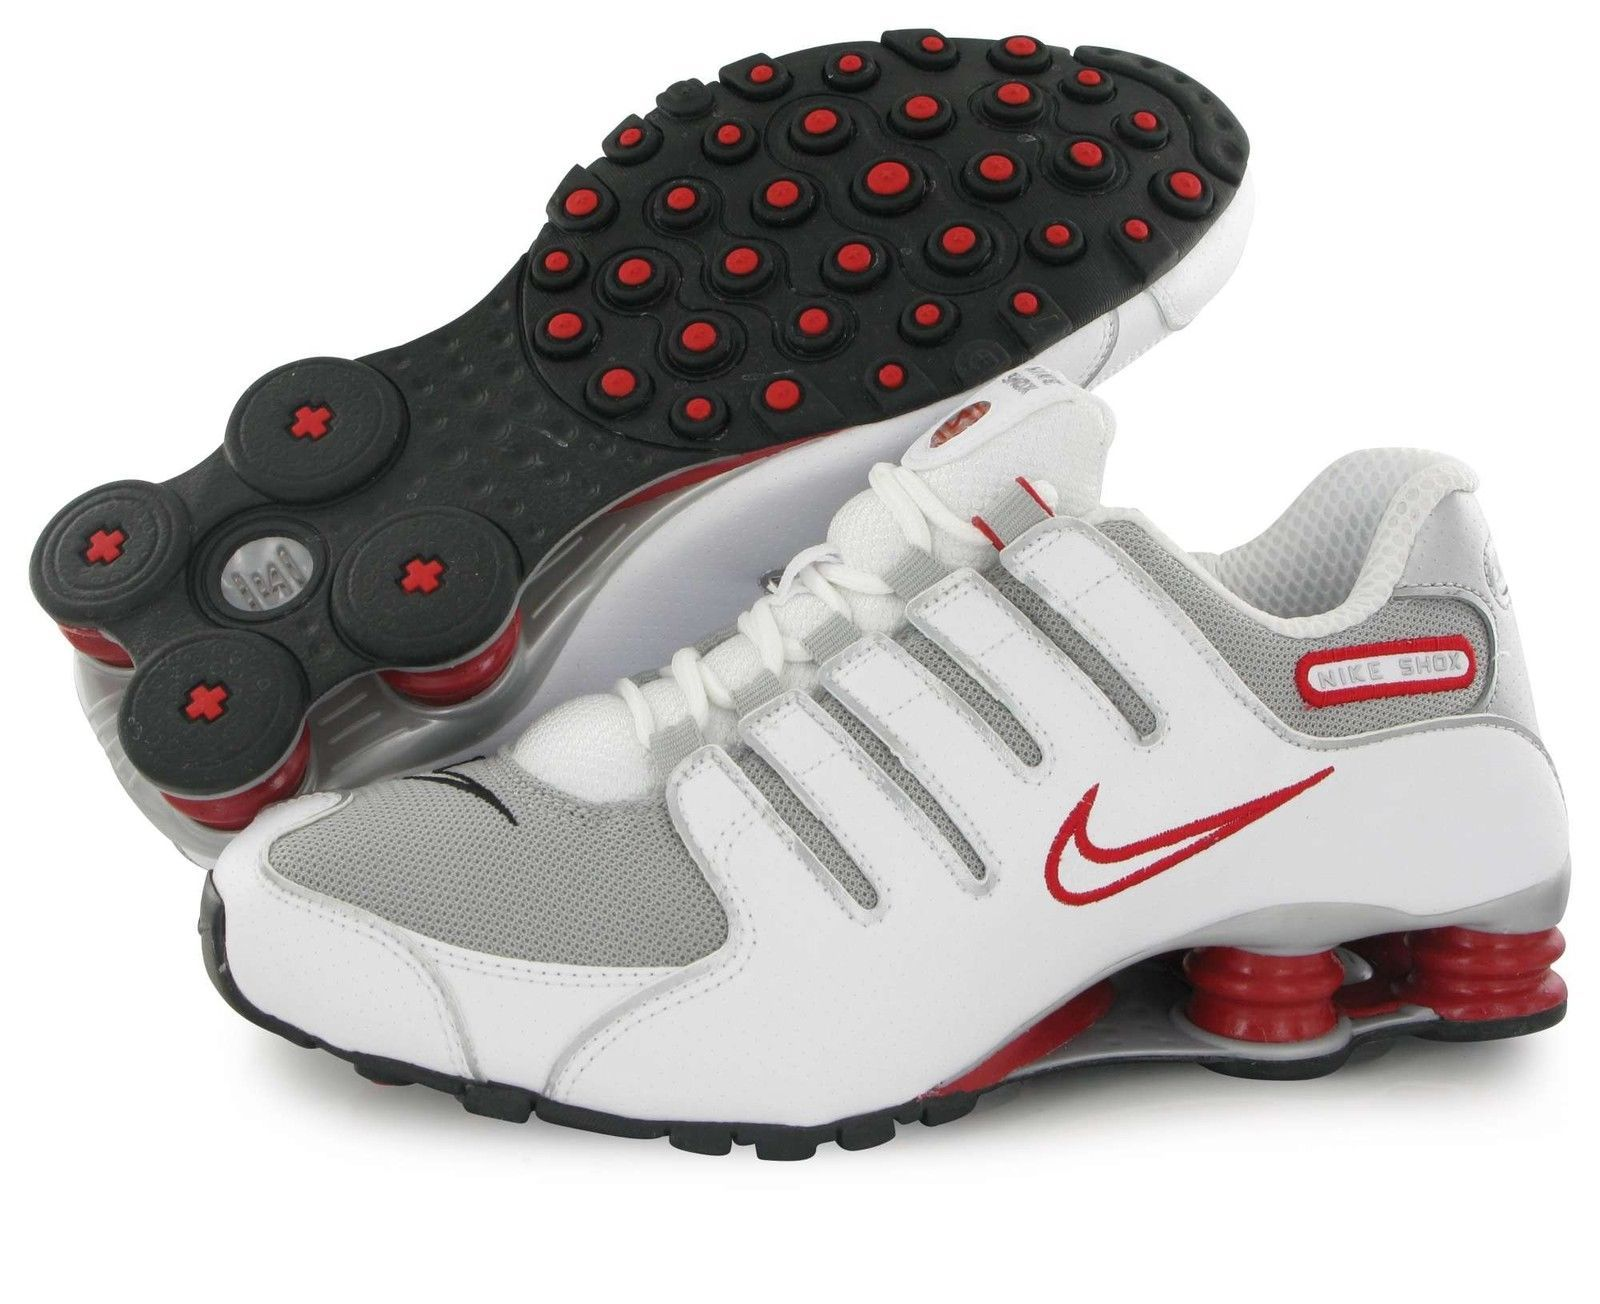 Nike SHOX NZ Training Running Mens White Silver Red 378341-104 Various  Sizes. Find this Pin and more on New York Fashion ... 1fe50c135